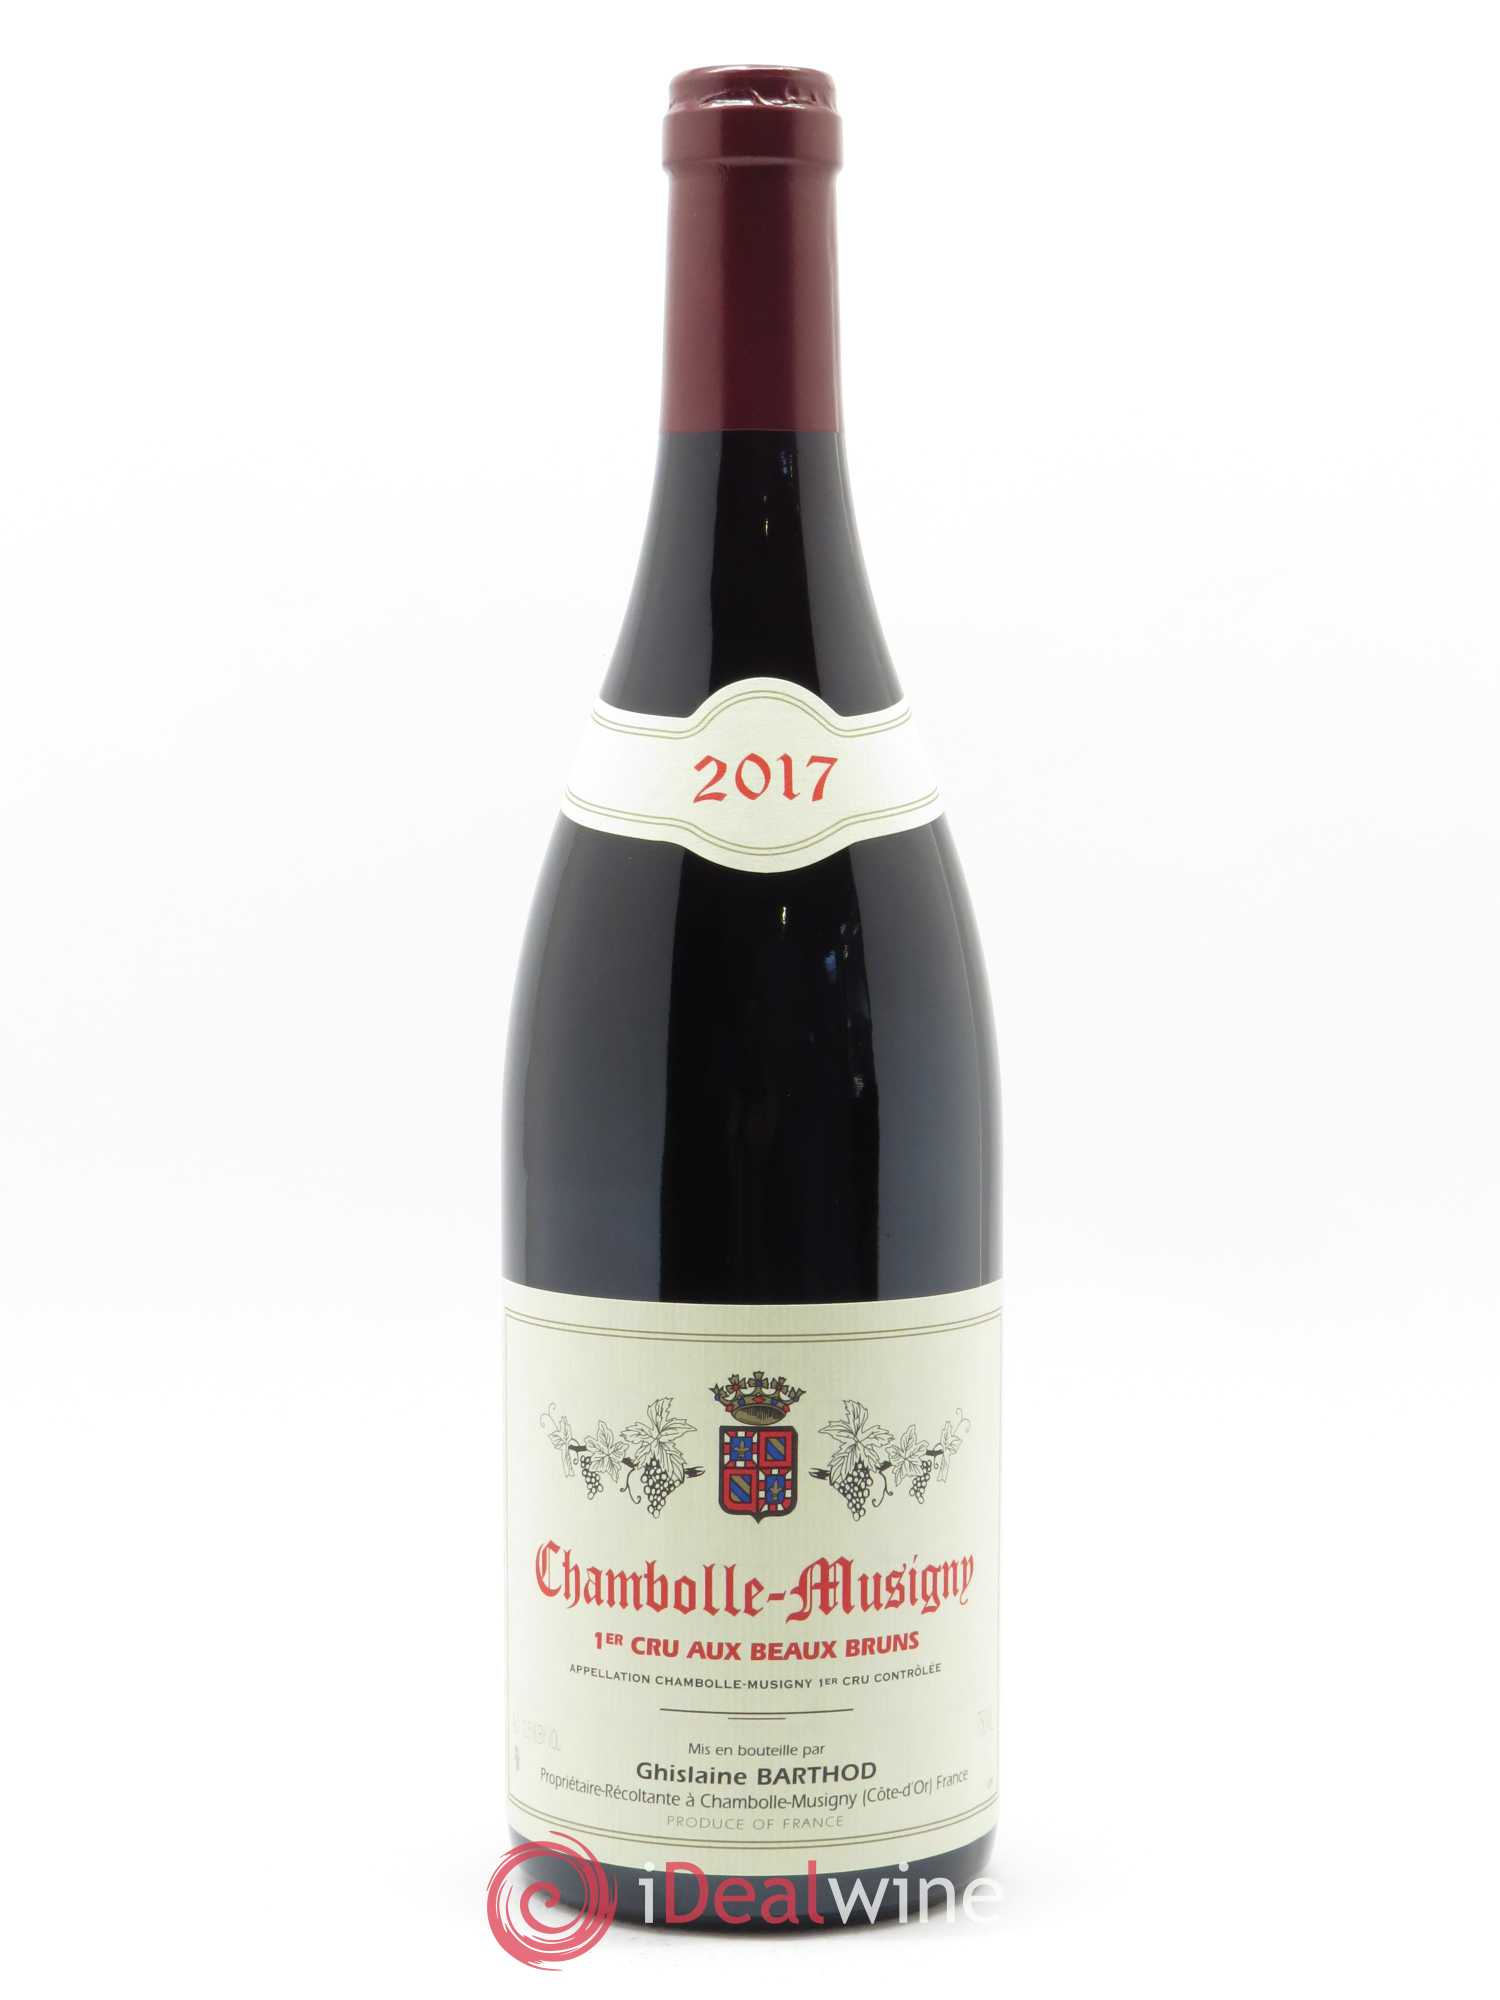 Chambolle-Musigny 1er Cru Aux Beaux Bruns Ghislaine Barthod